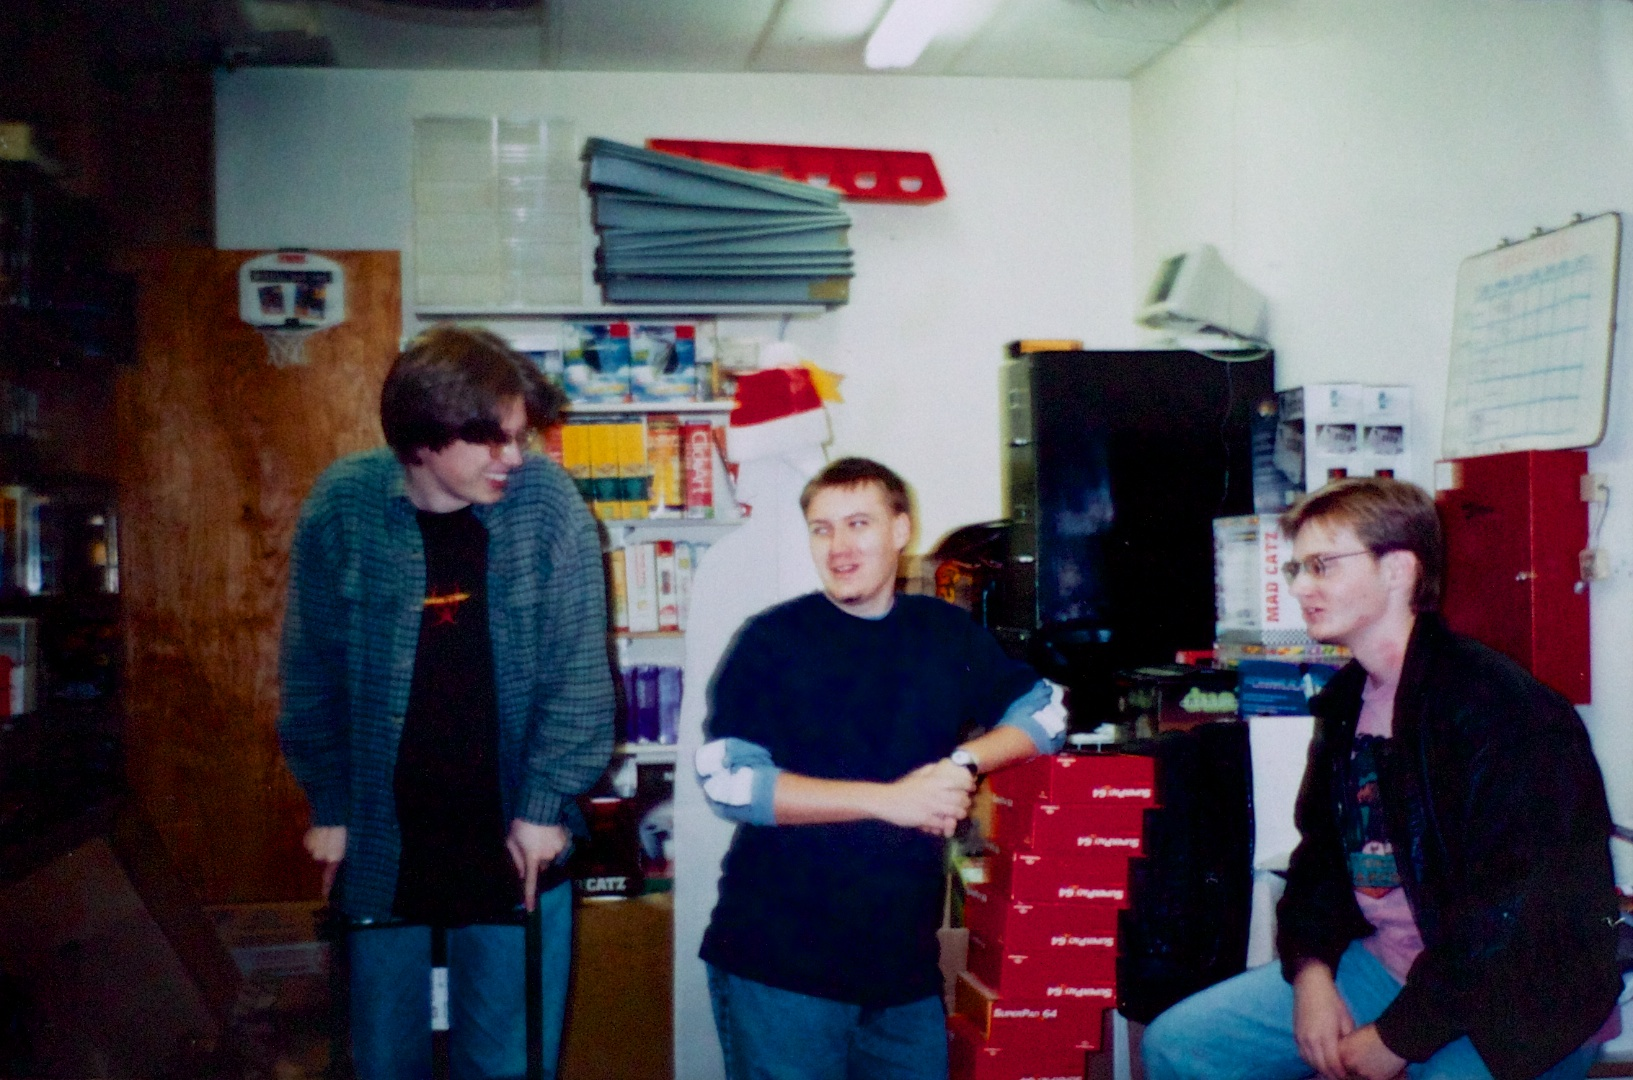 The author and his buddies Matt and Steve, hanging out in the Babbage's back room circa 1997. Facing the wall behind Matt is the Darth Vader cardboard cutout.